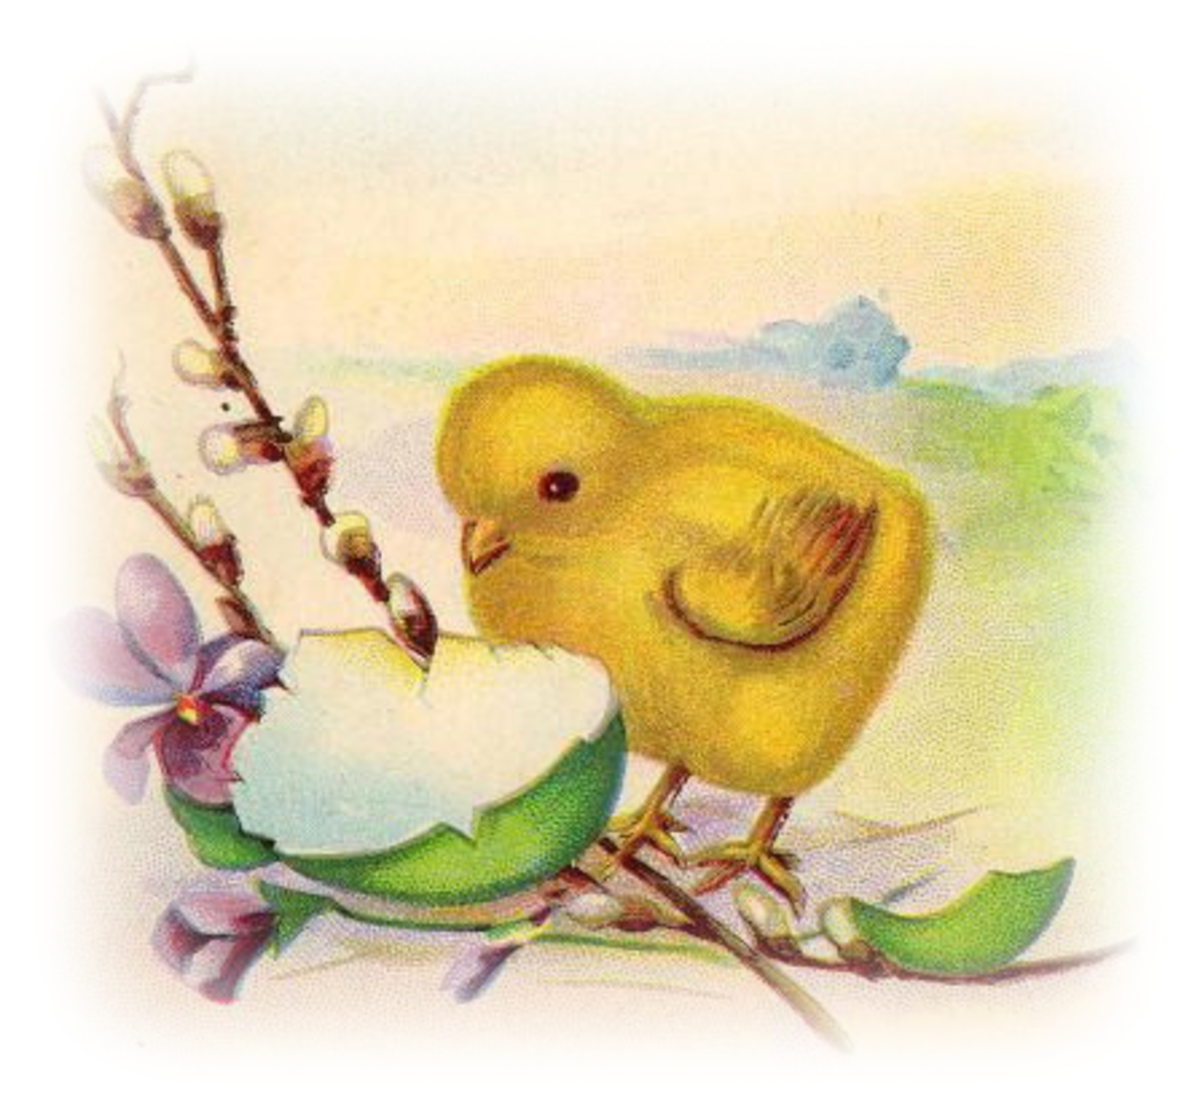 Free vintage Easter clipart images: Yellow baby chick with broken Easter egg shell